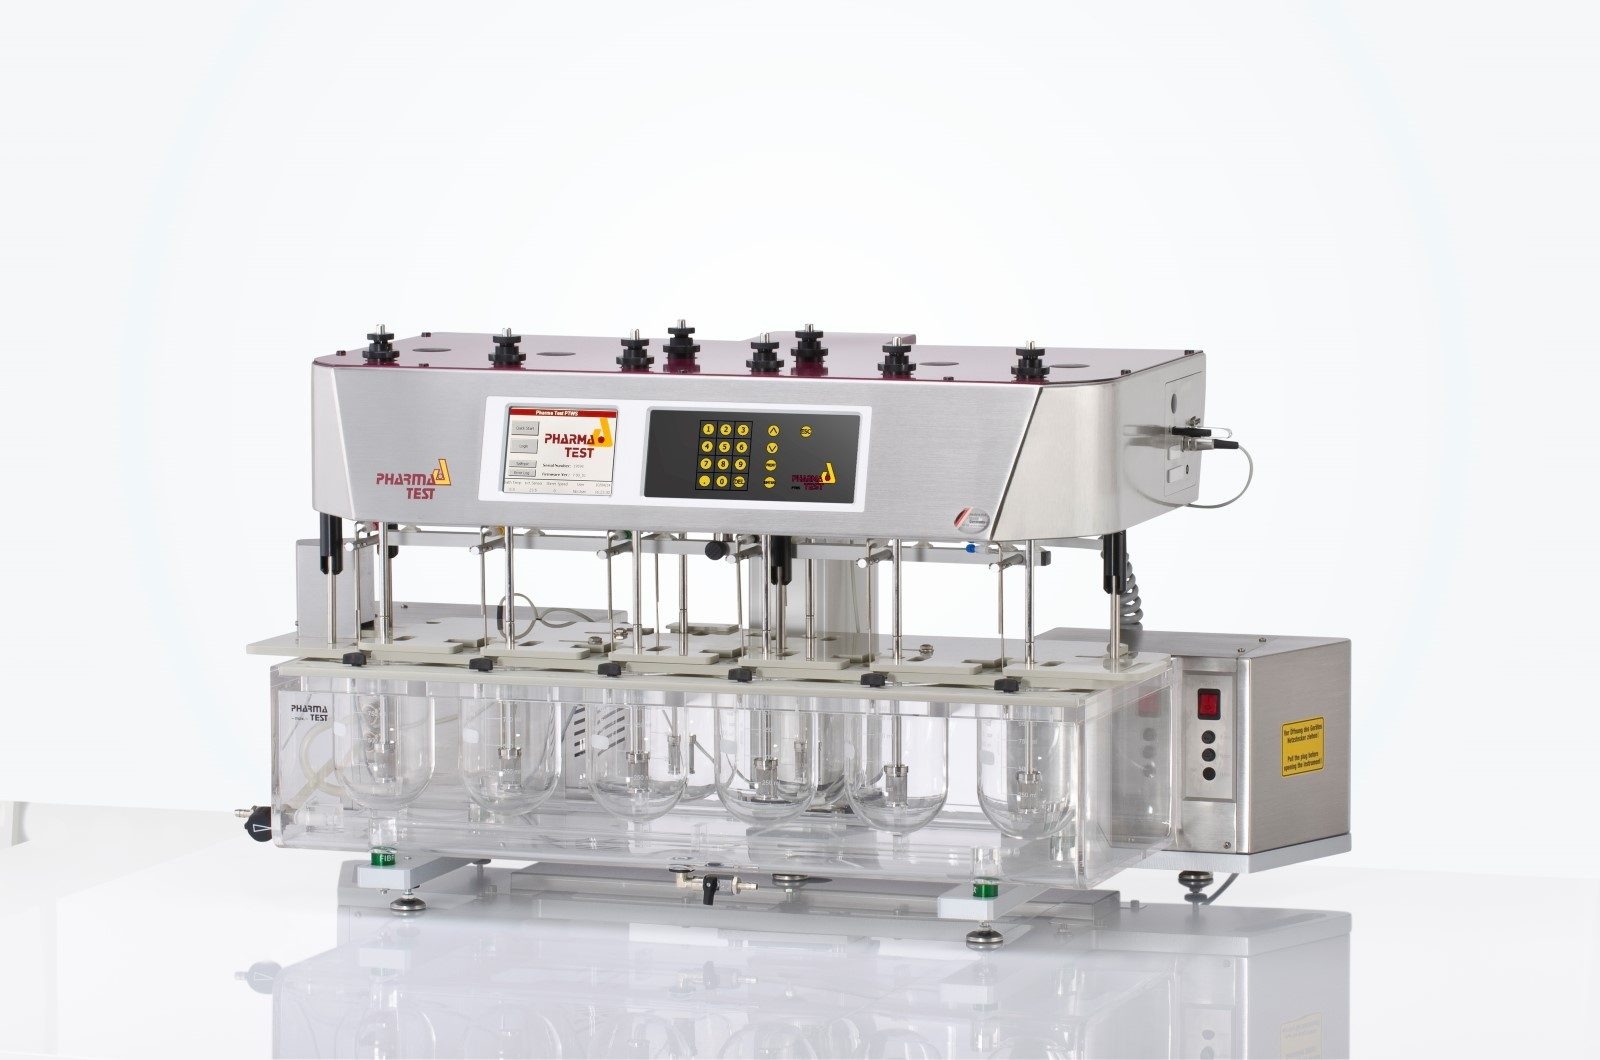 PTWS 620 dissolution tester - the 6 main test vessels are arranged in a single line for optimal visibility